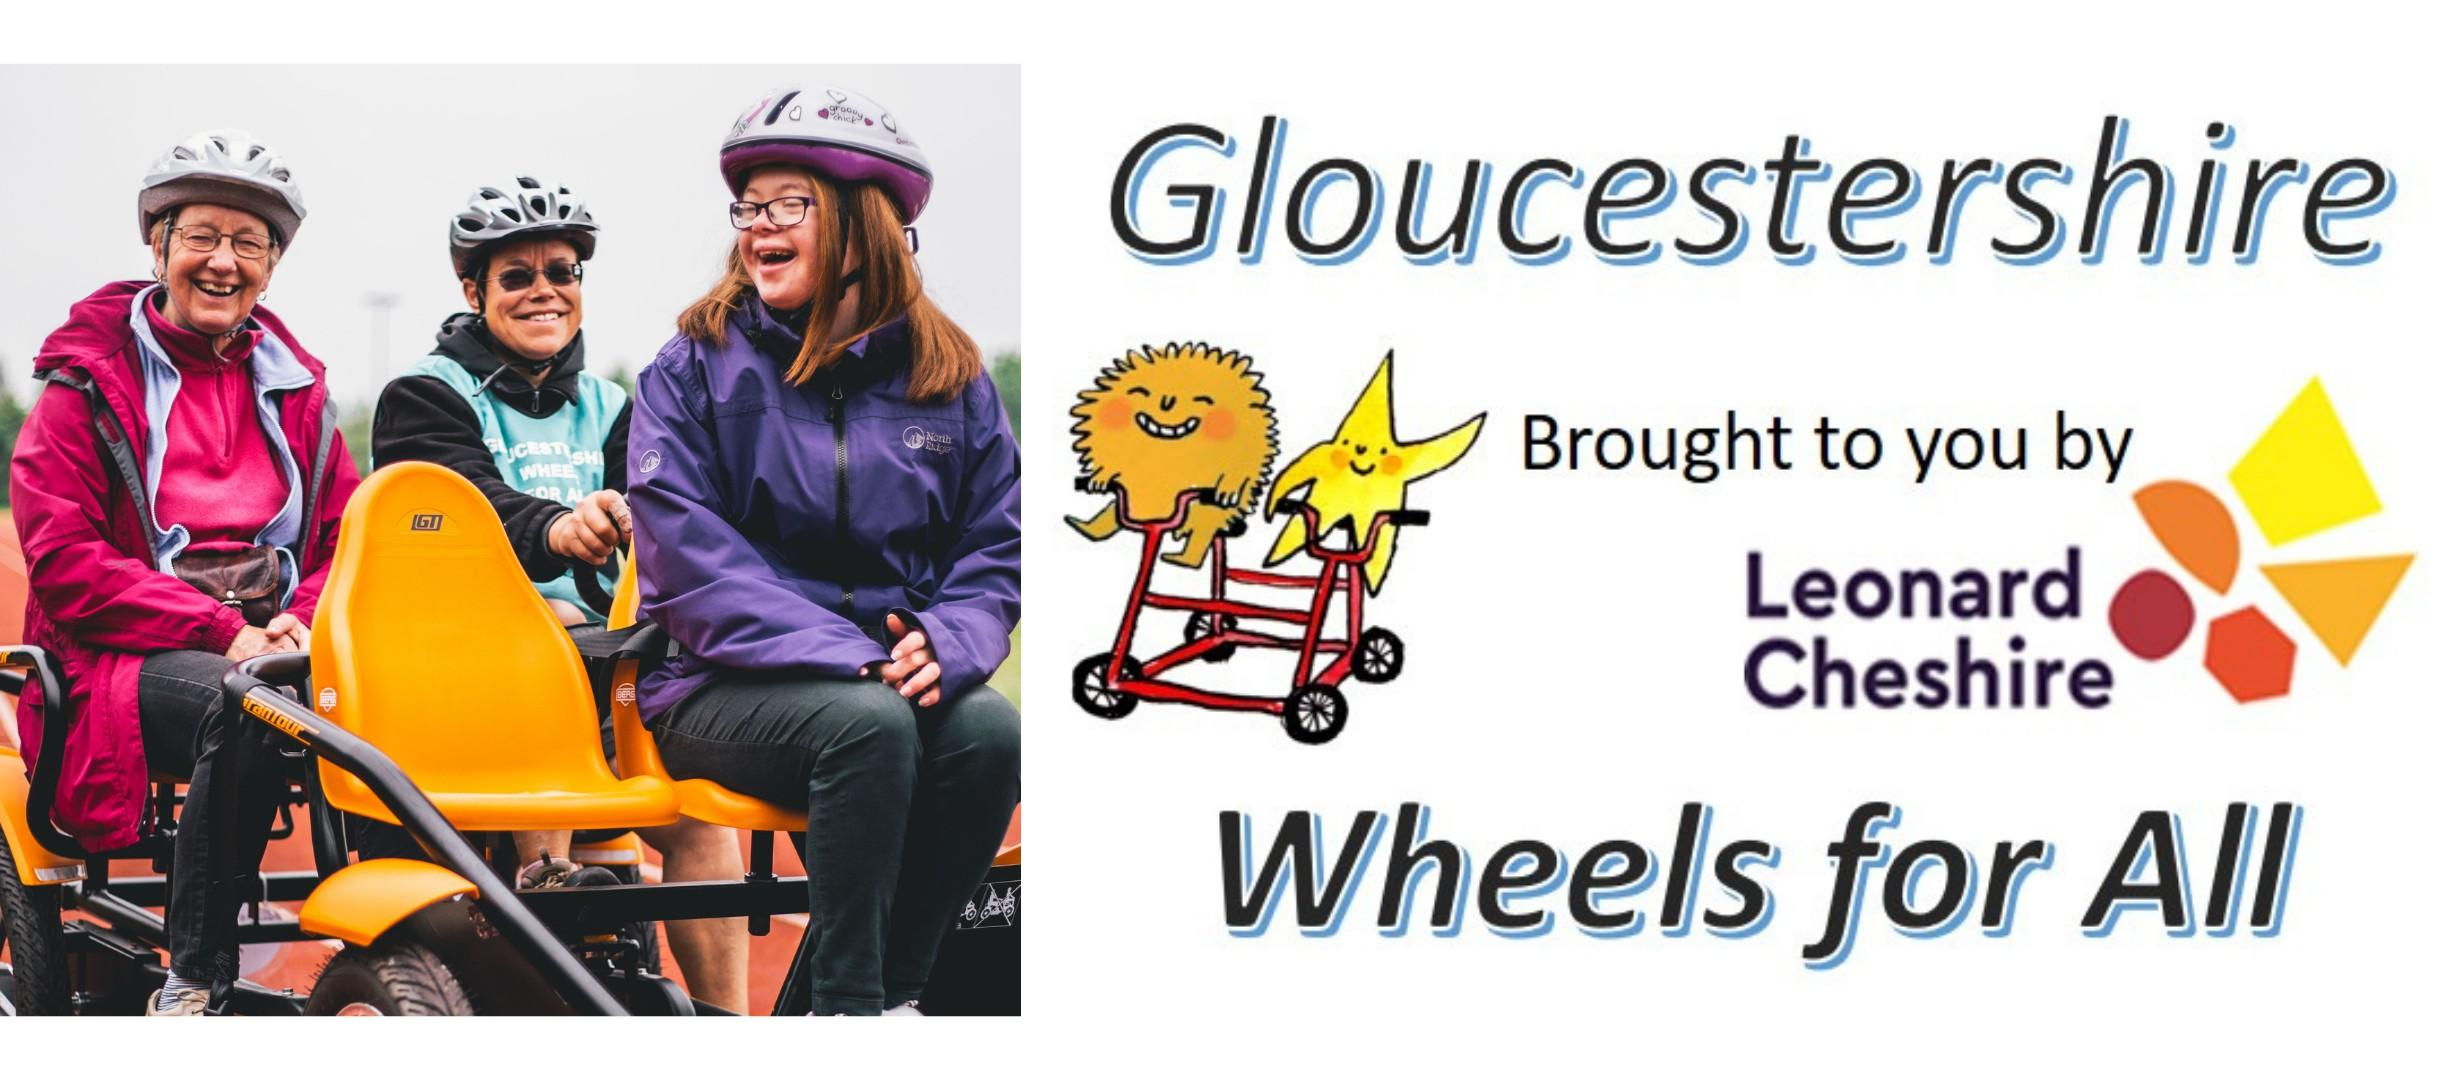 three people onn a bike; text 'Gloucestershire wheels for all brought to you by Leonard Cheshire'